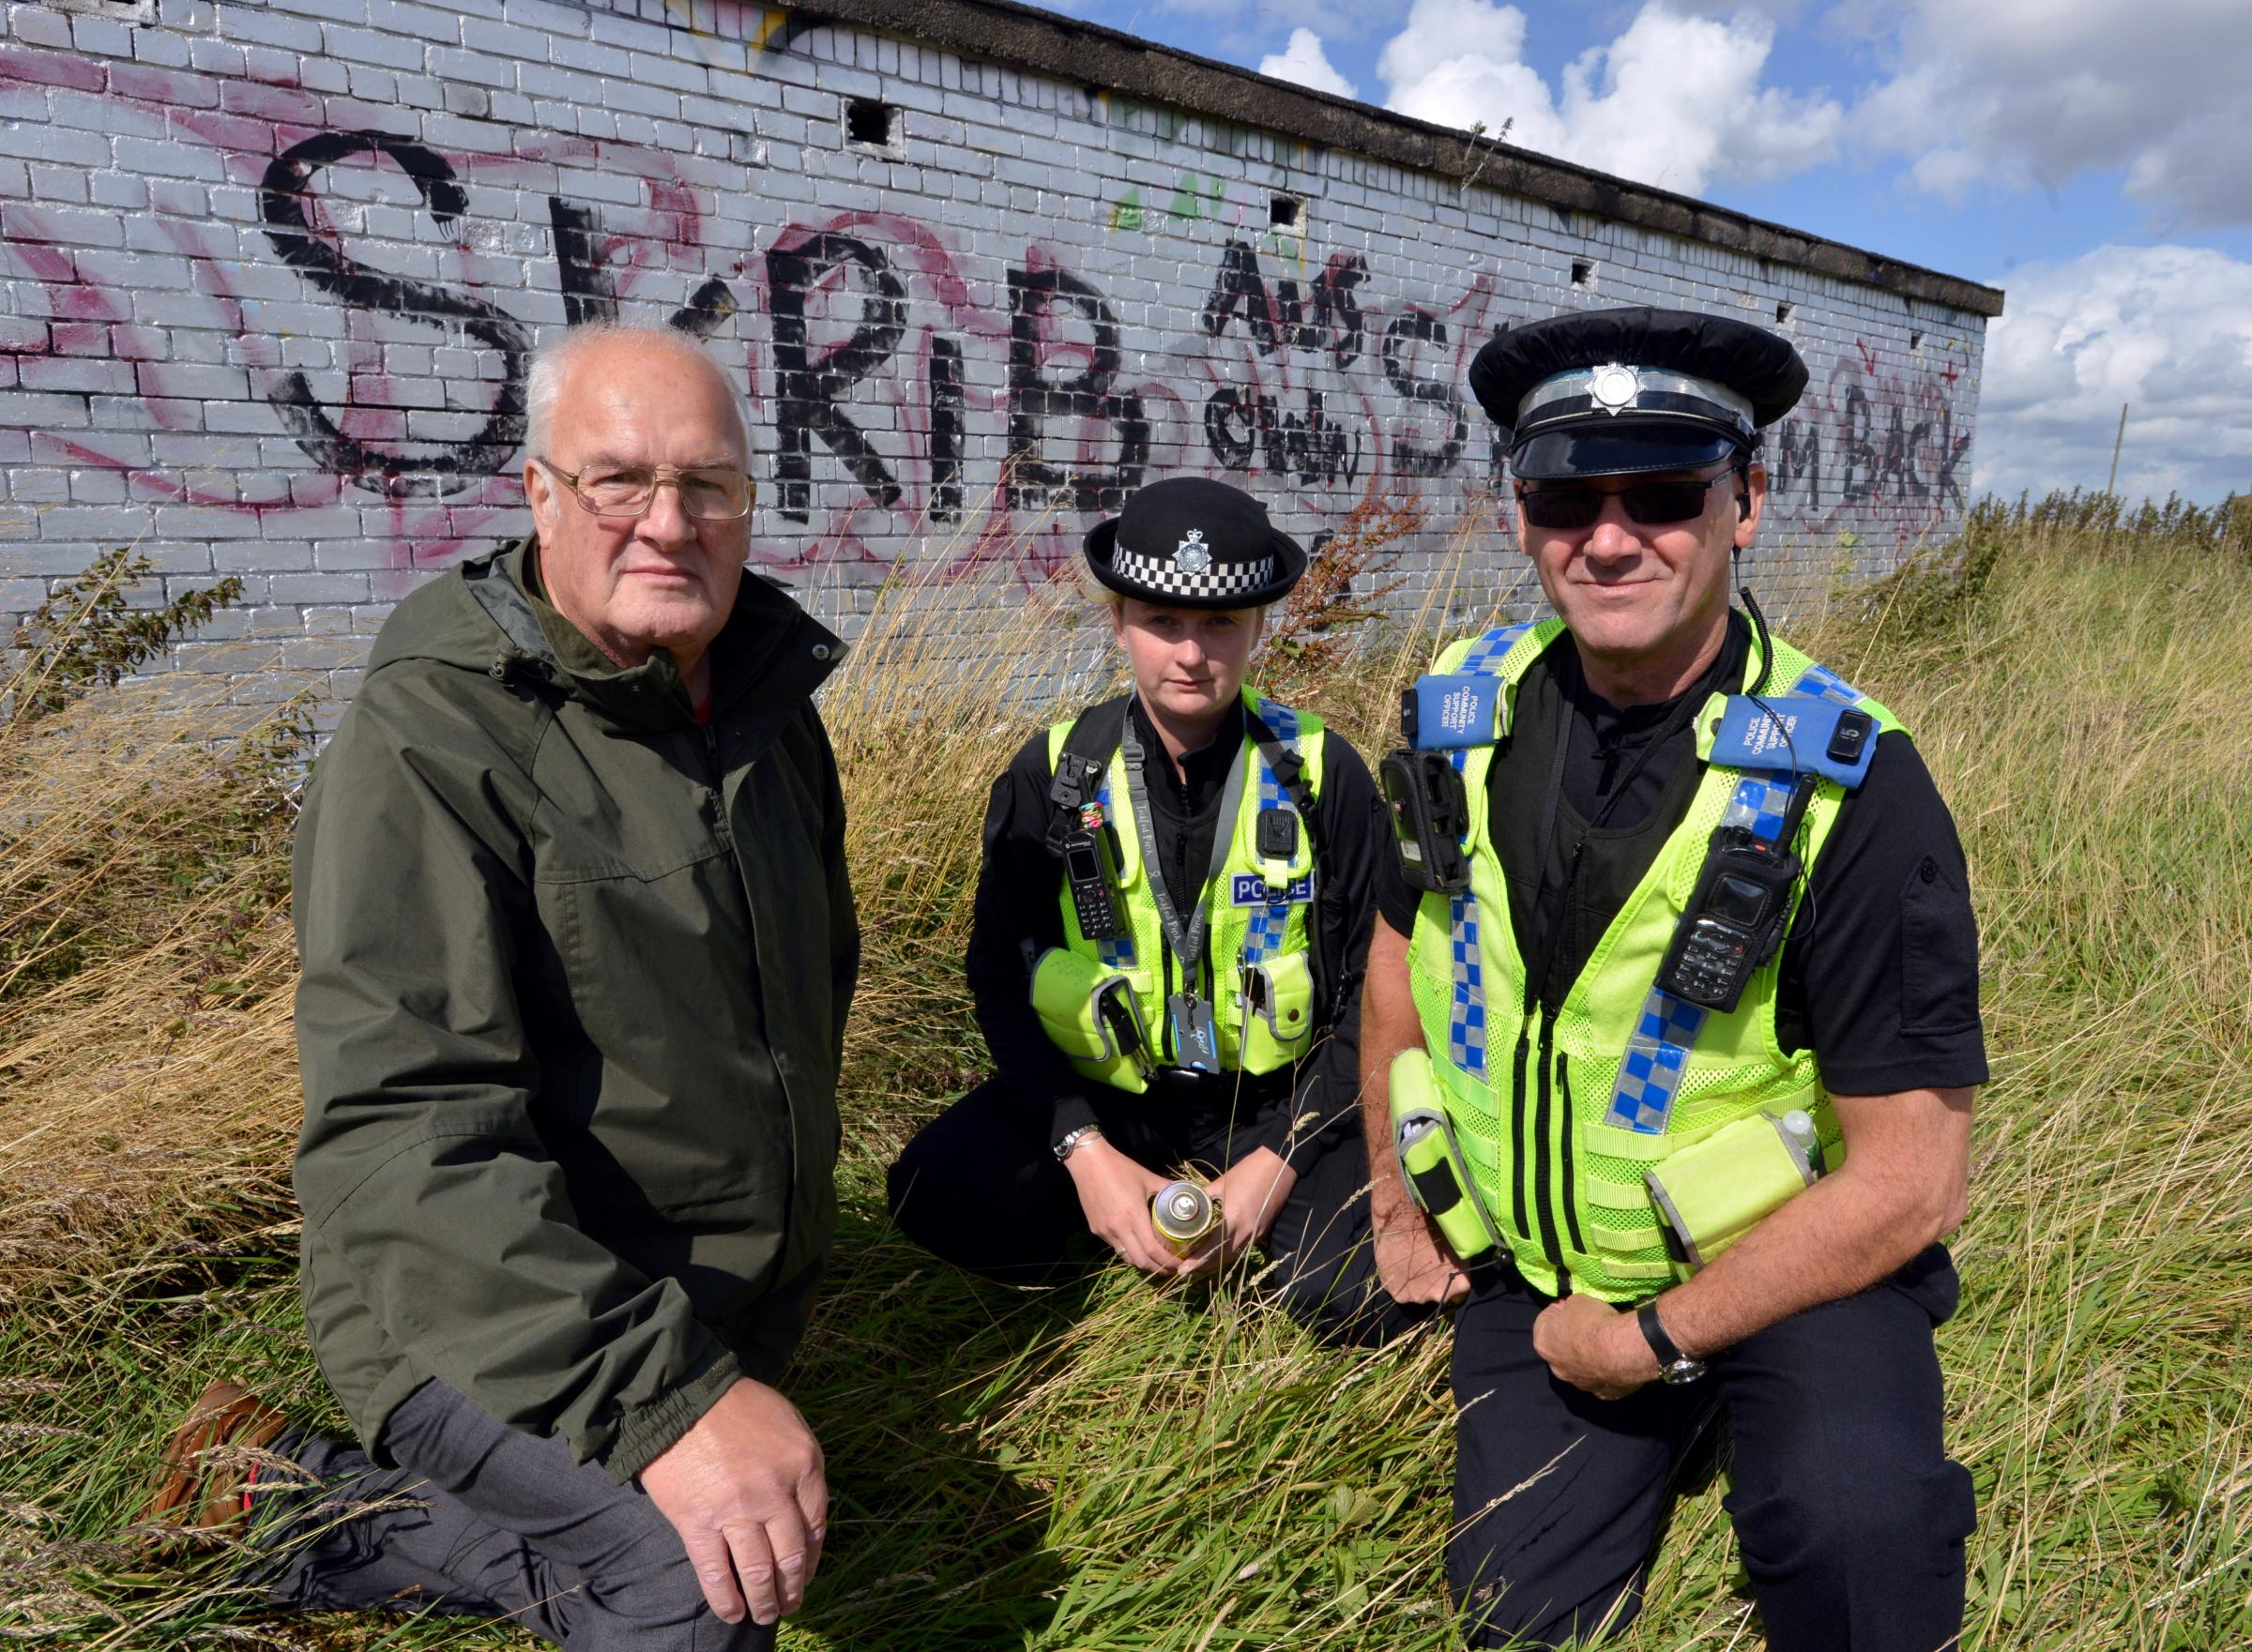 VIDEO: Police hunt graffiti vandal daubing Bradford village in graffiti